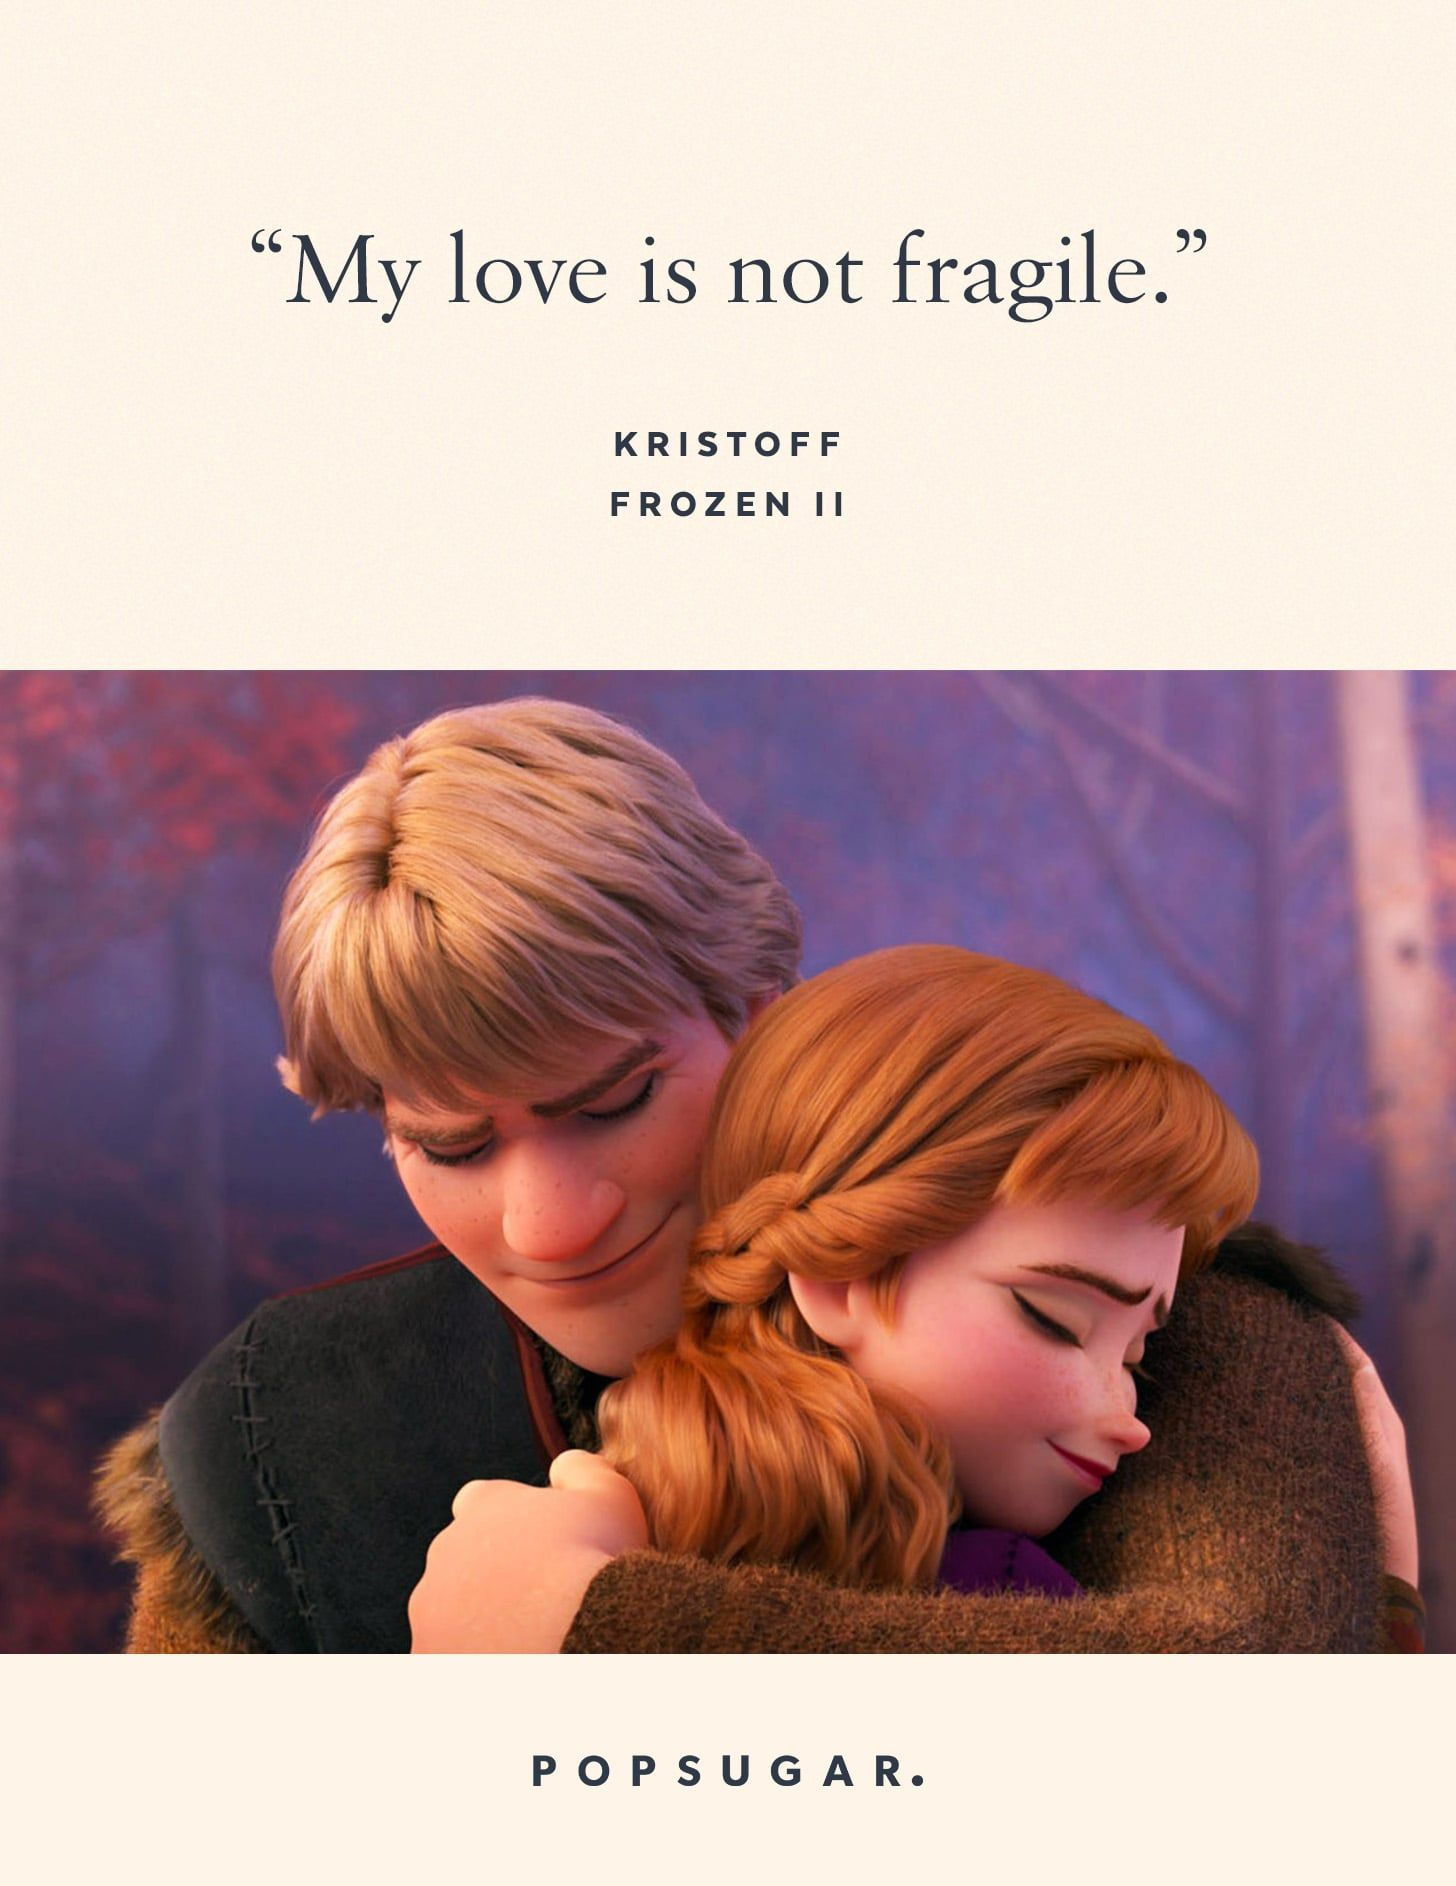 44 Emotional and Beautiful Disney Quotes That Are